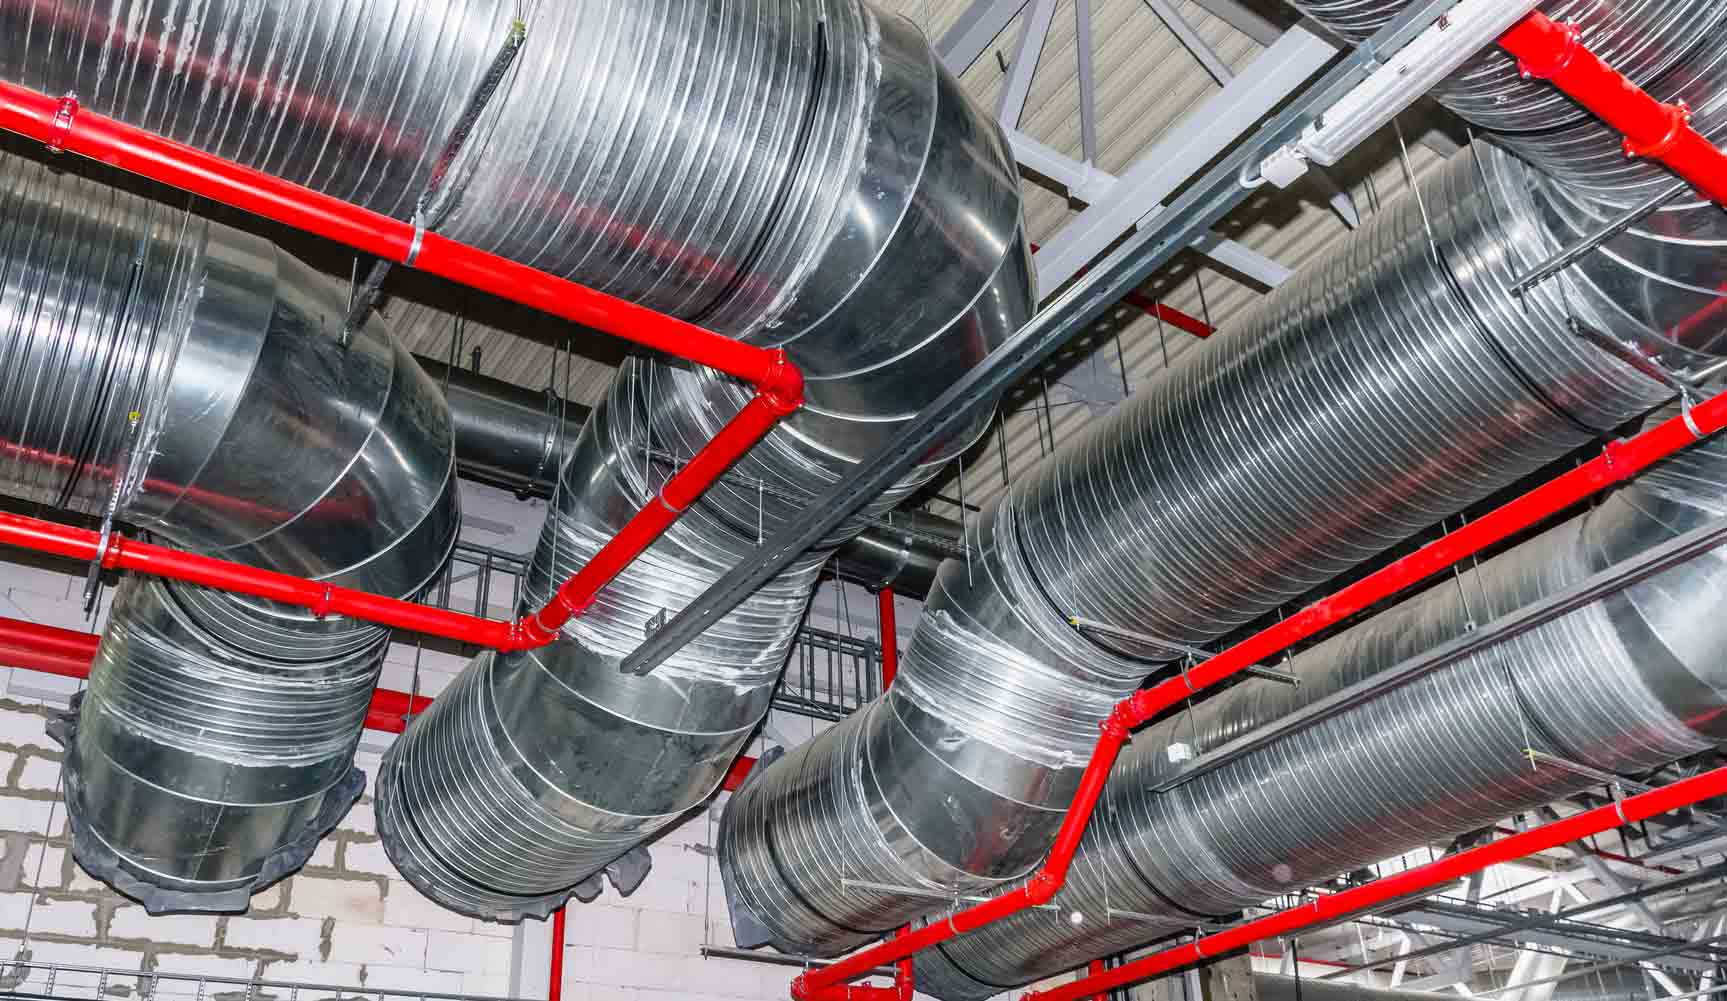 Air Duct Cleaning, Duct Cleaning, and Commercial Air Duct Cleaning in Mobile, AL